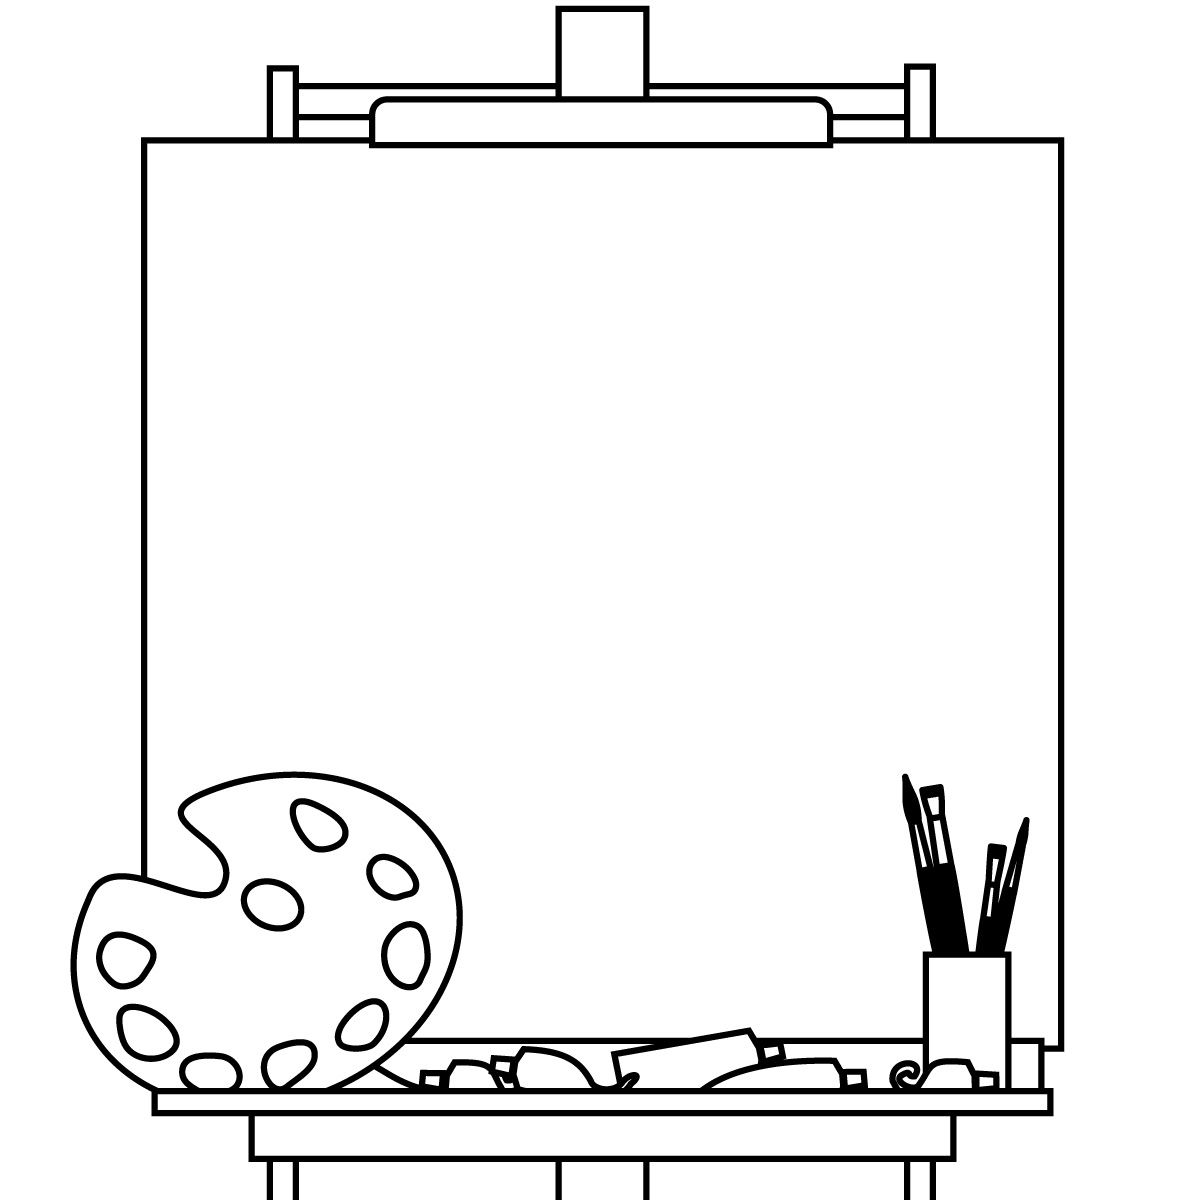 Blank canvas clipart graphic freeuse library Blank canvas clipart - Clip Art Library graphic freeuse library